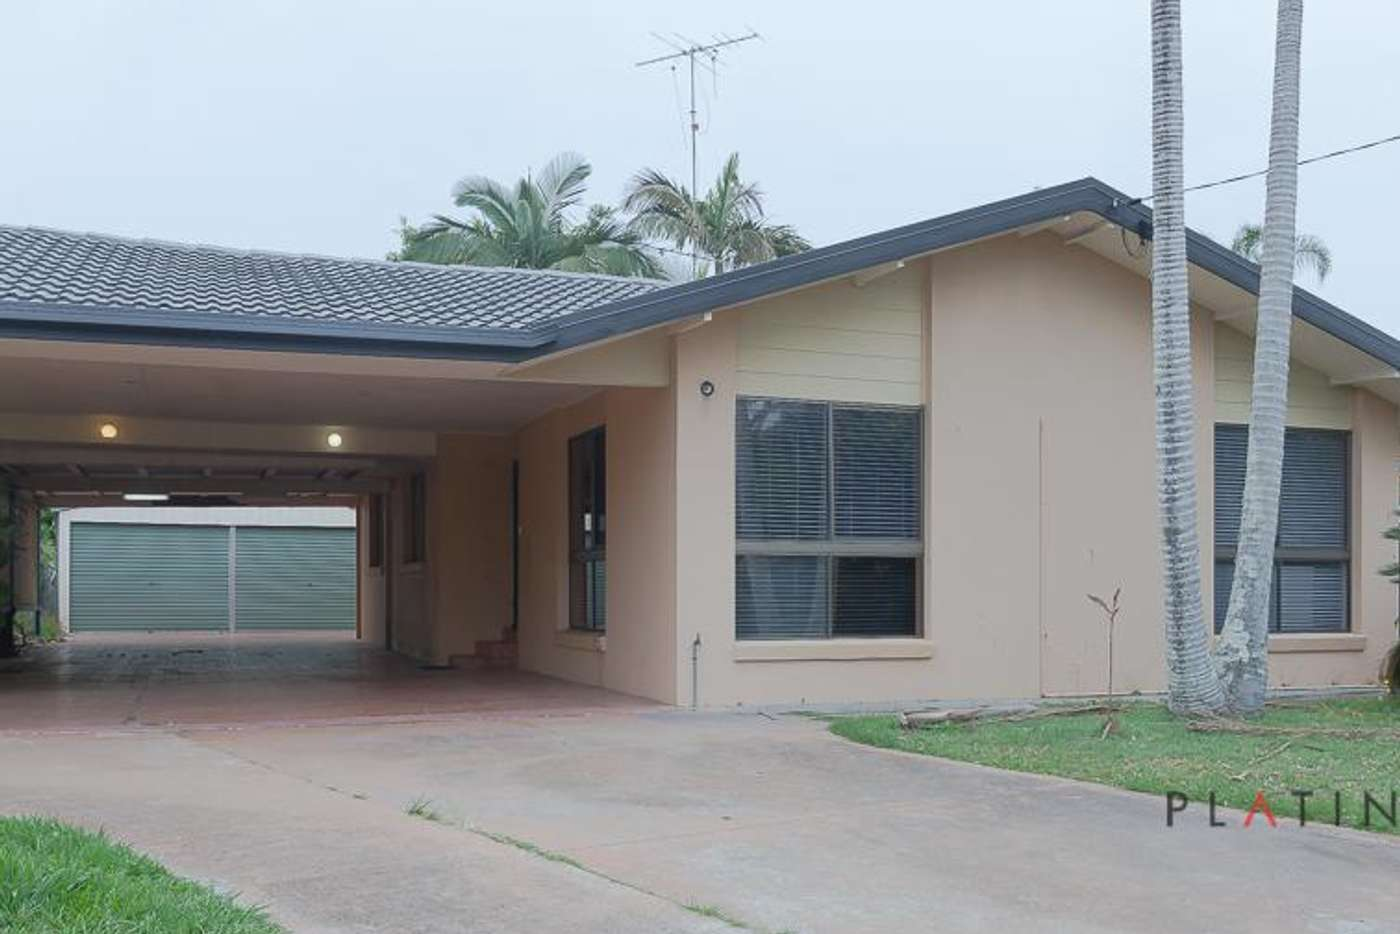 Main view of Homely house listing, 55 Cypress Drive, Broadbeach Waters QLD 4218